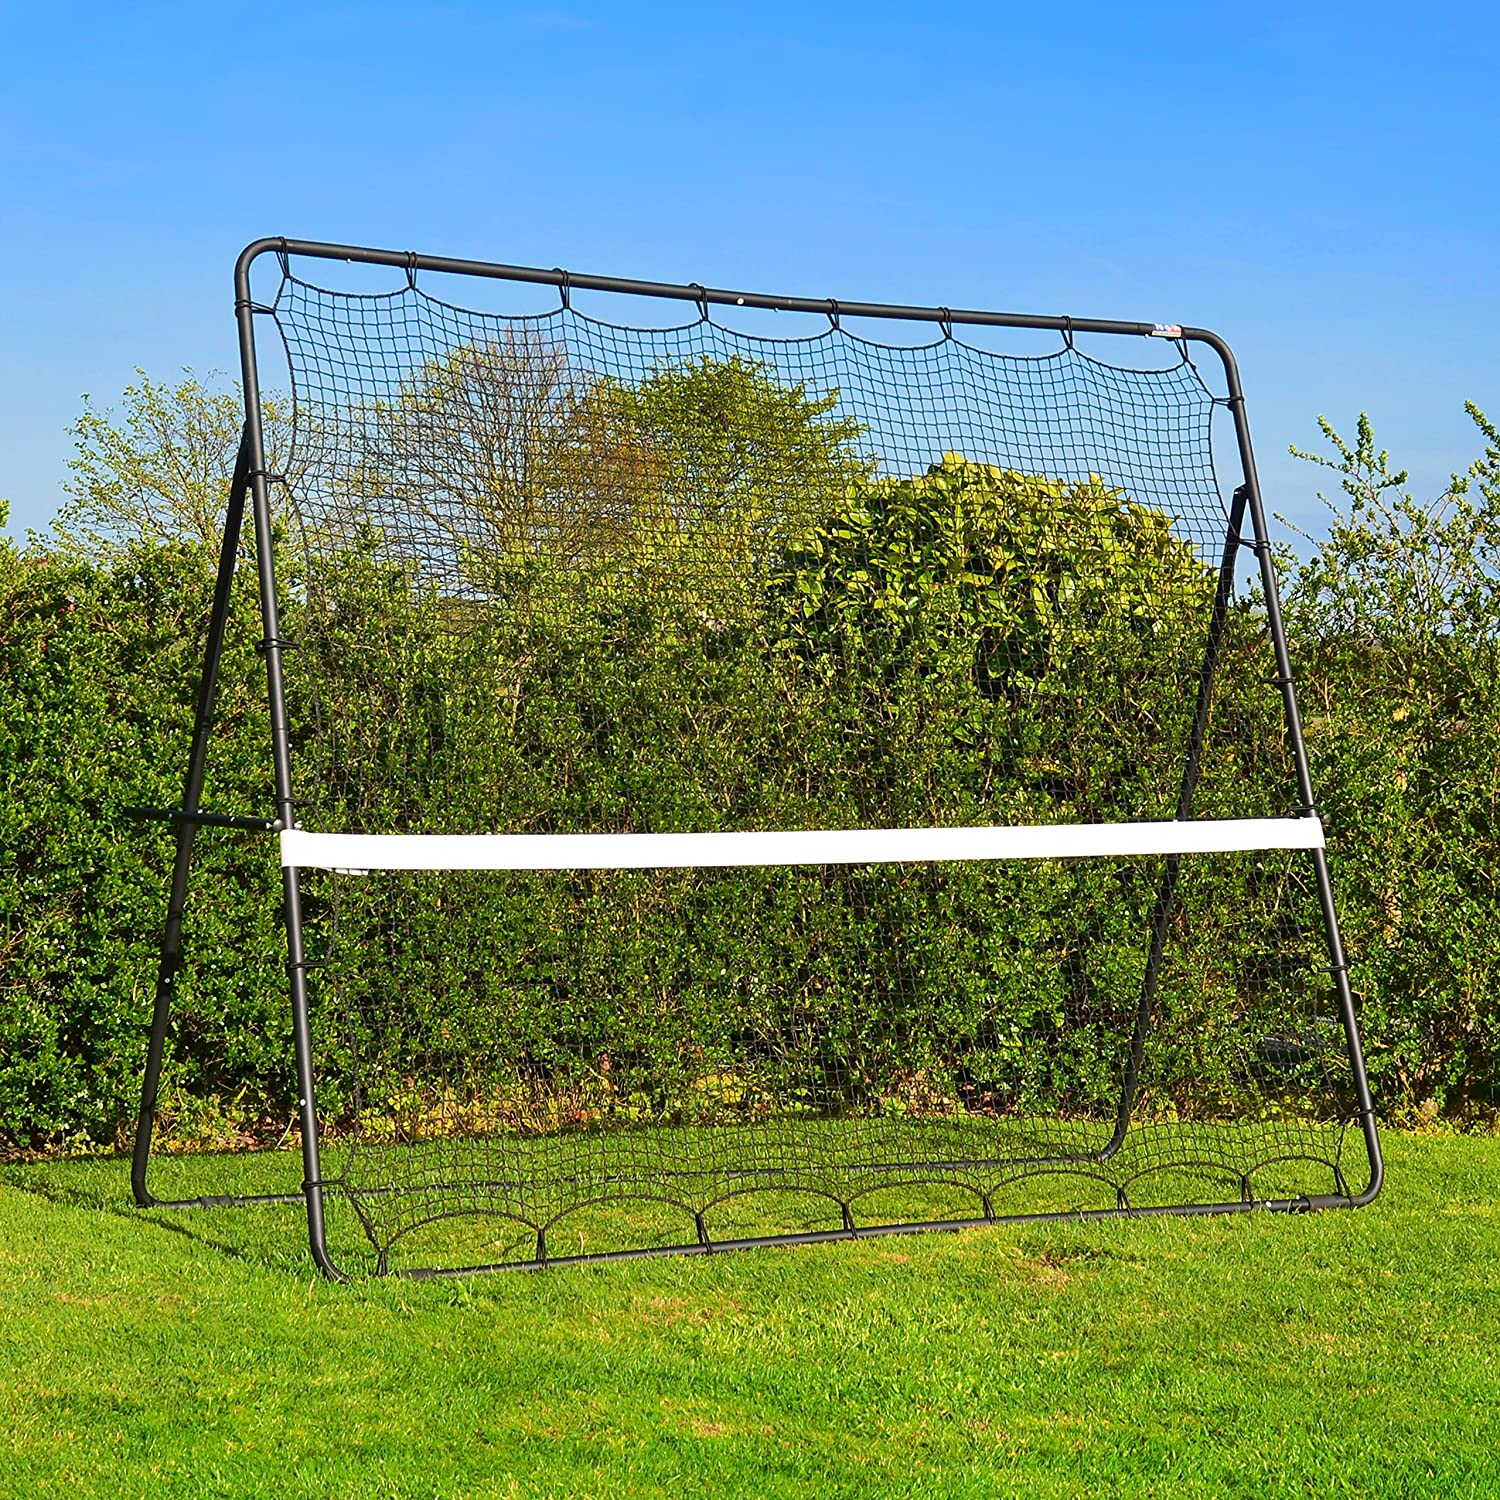 Tennis Rebound Net Trainer - 9' x 7' Net World Sports